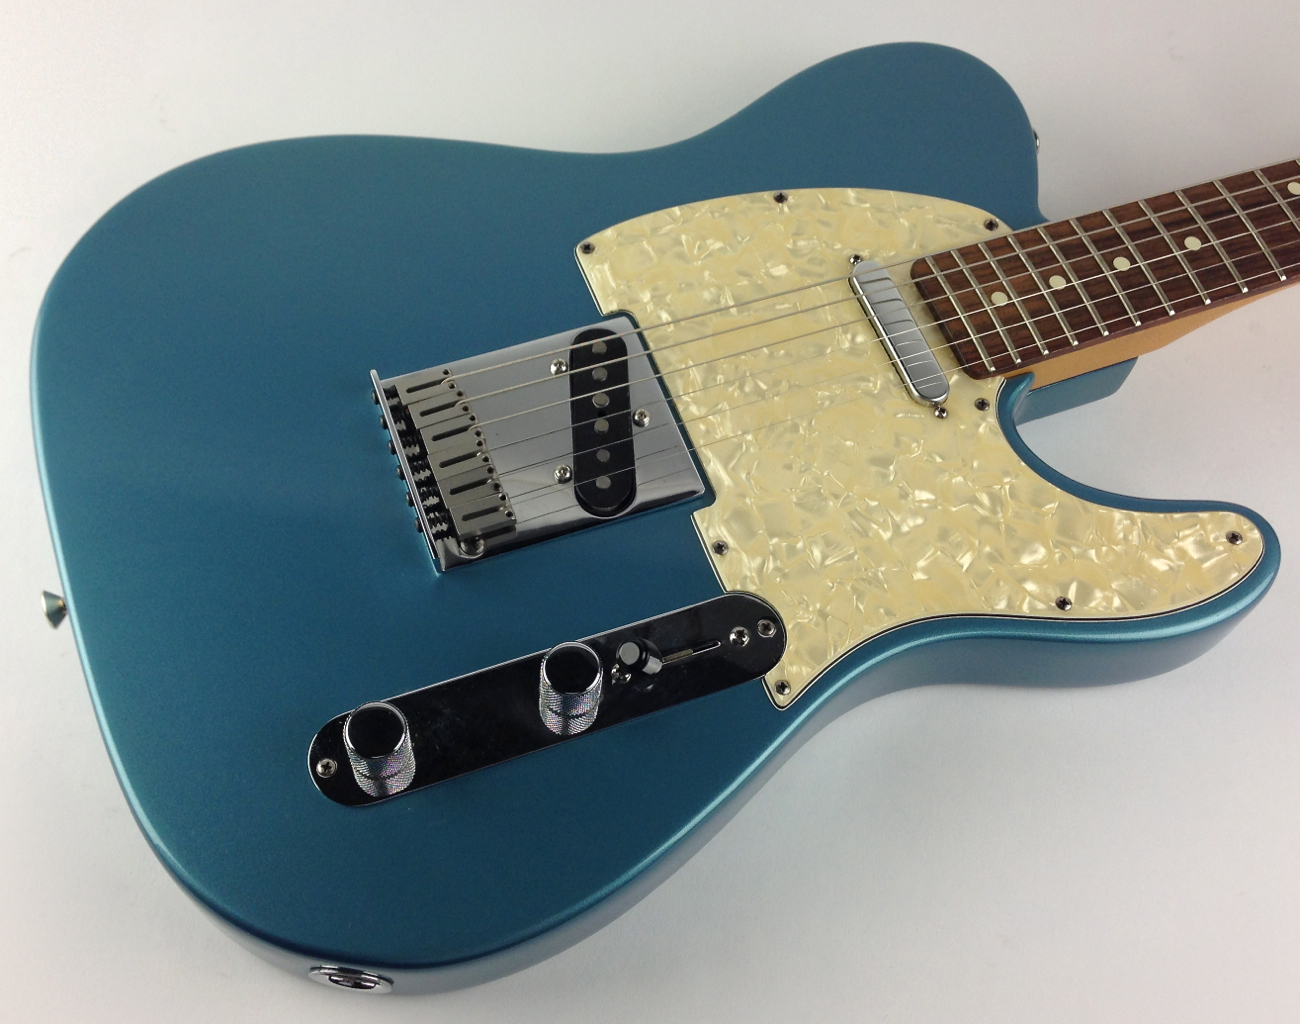 fender telecaster usa 1997 lake placid blue guitar for sale thunder road guitars. Black Bedroom Furniture Sets. Home Design Ideas